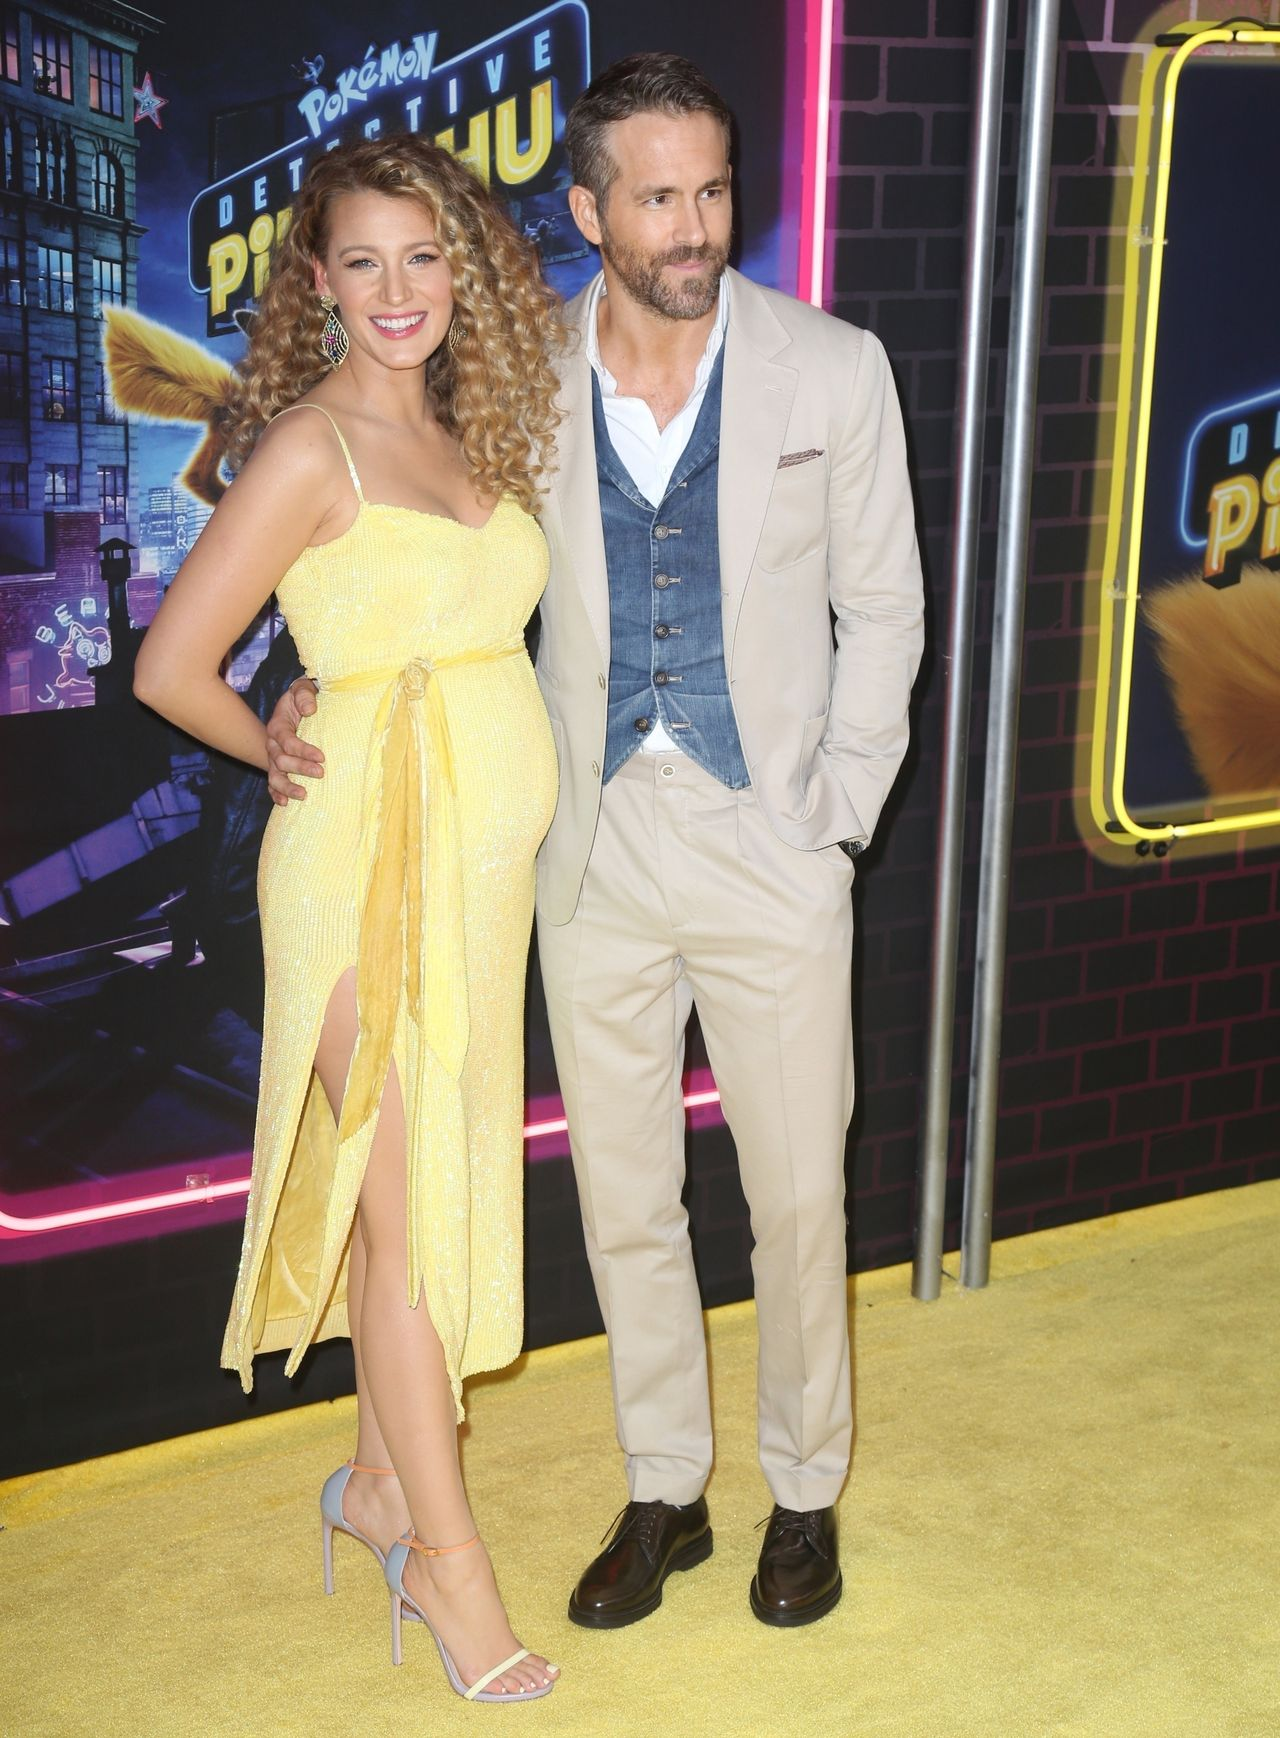 Blake Lively debuts baby bump at the premiere of 'Pokemon' with Ryan Reynolds Blake Lively, Ryan Reynolds